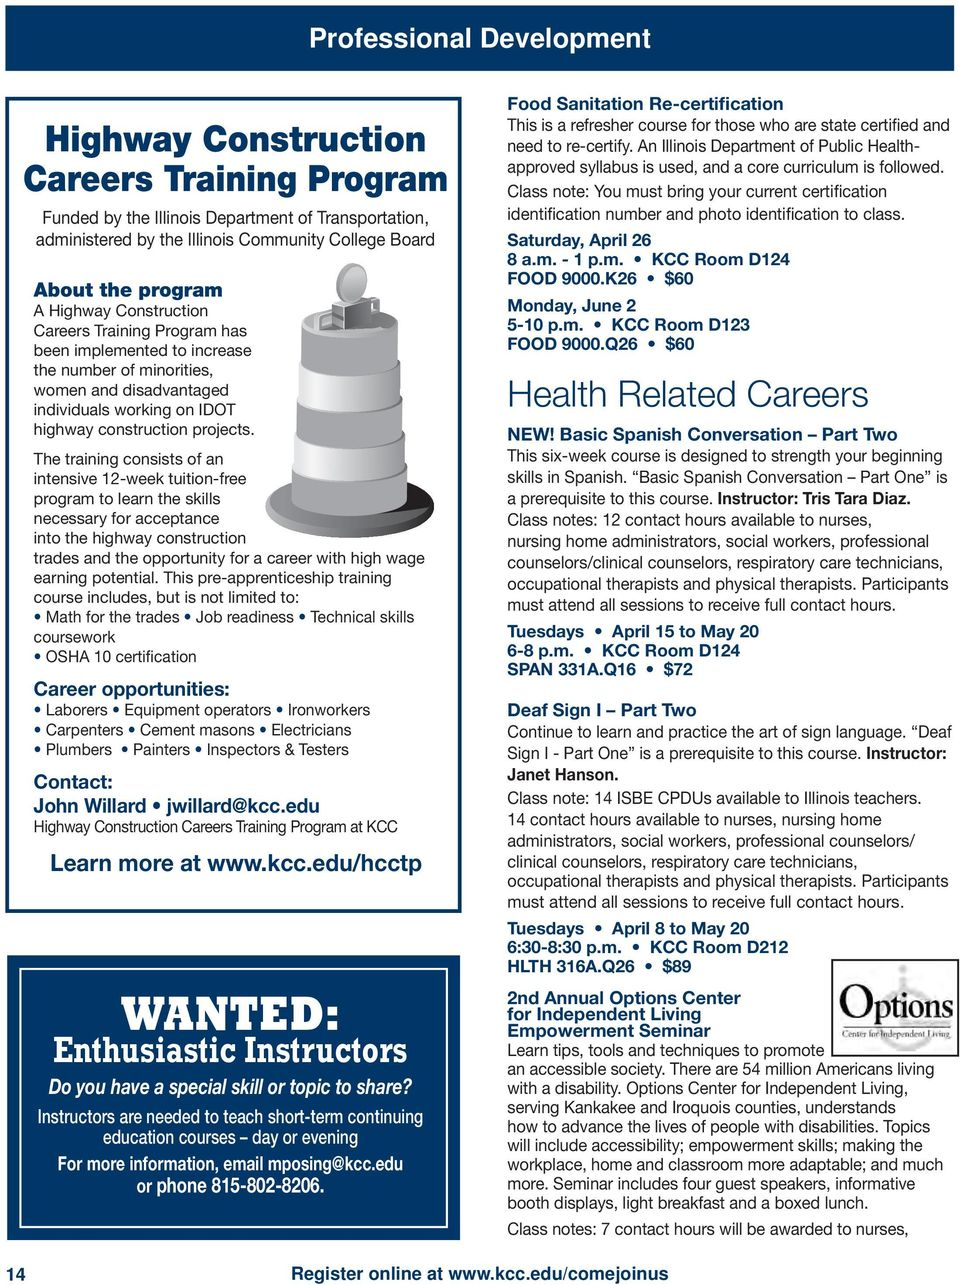 The training consists of an intensive 12-week tuition-free program to learn the skills necessary for acceptance into the highway construction trades and the opportunity for a career with high wage